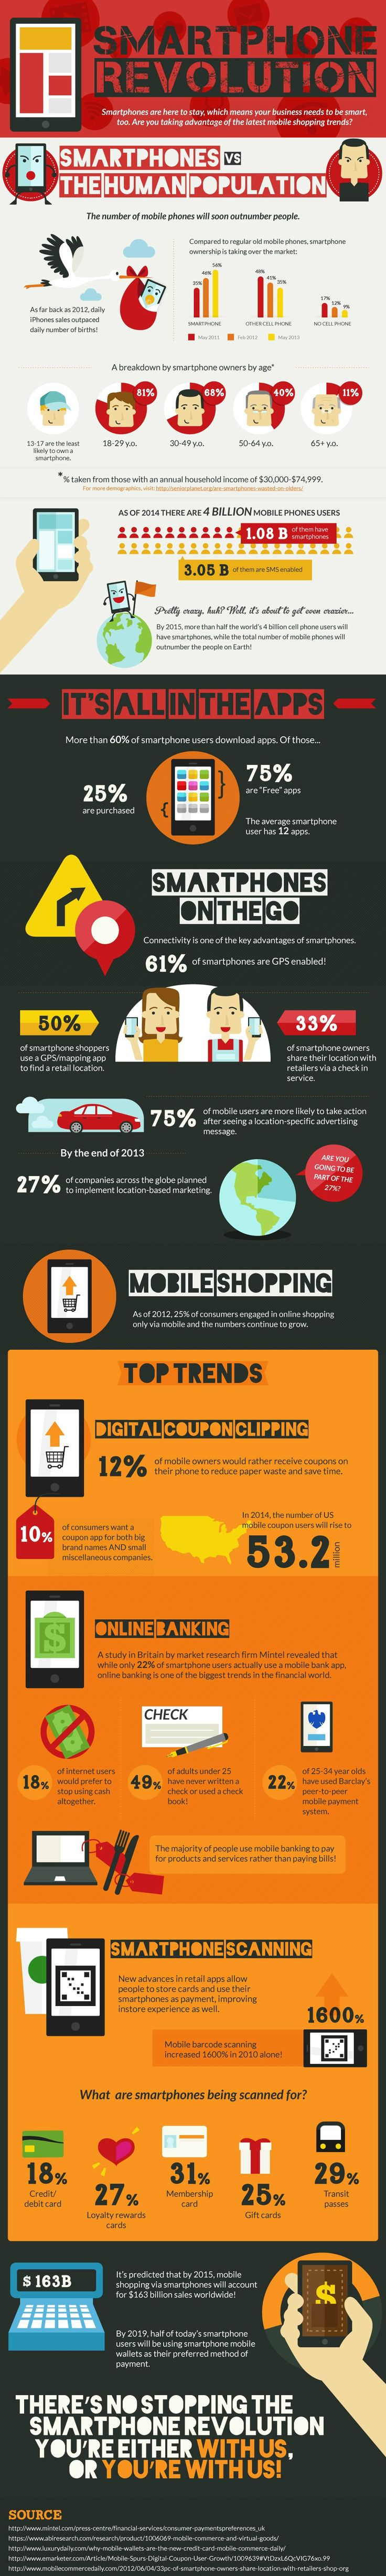 Smartphone Revolution: A Retailers Guide to the New Mobile Market